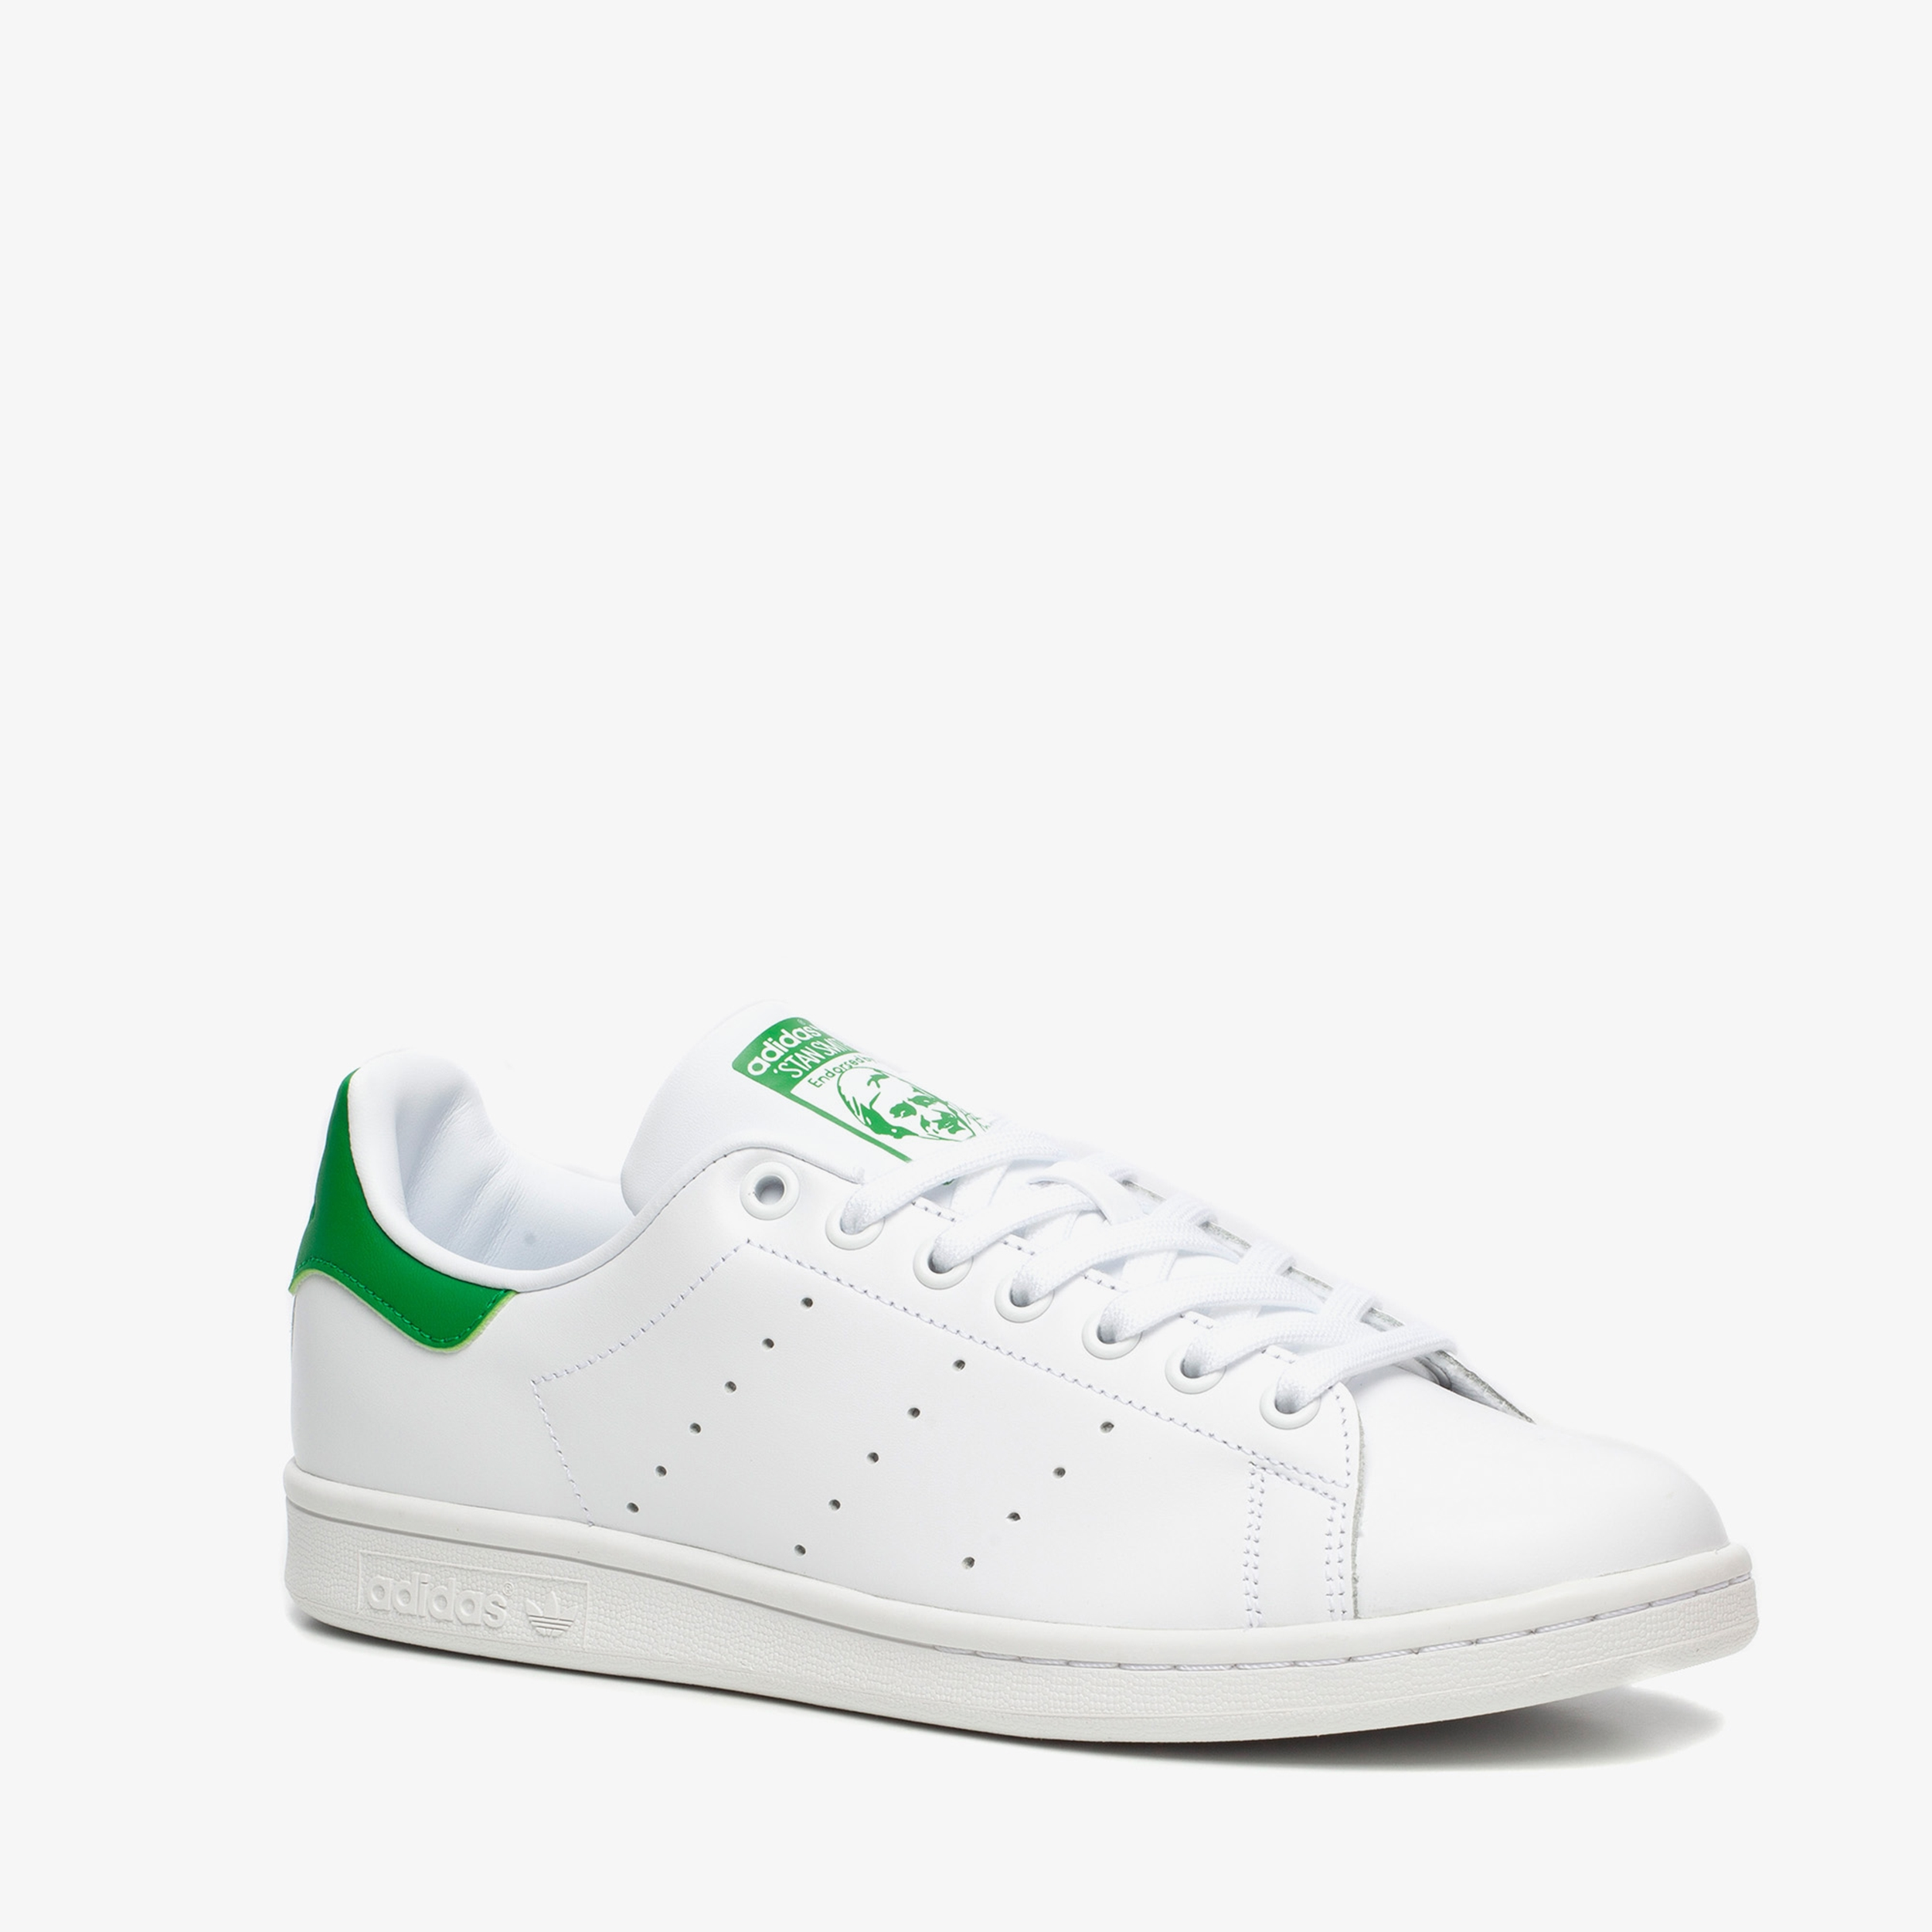 Adidas Stan Smith dames sneakers | Scapino.nl